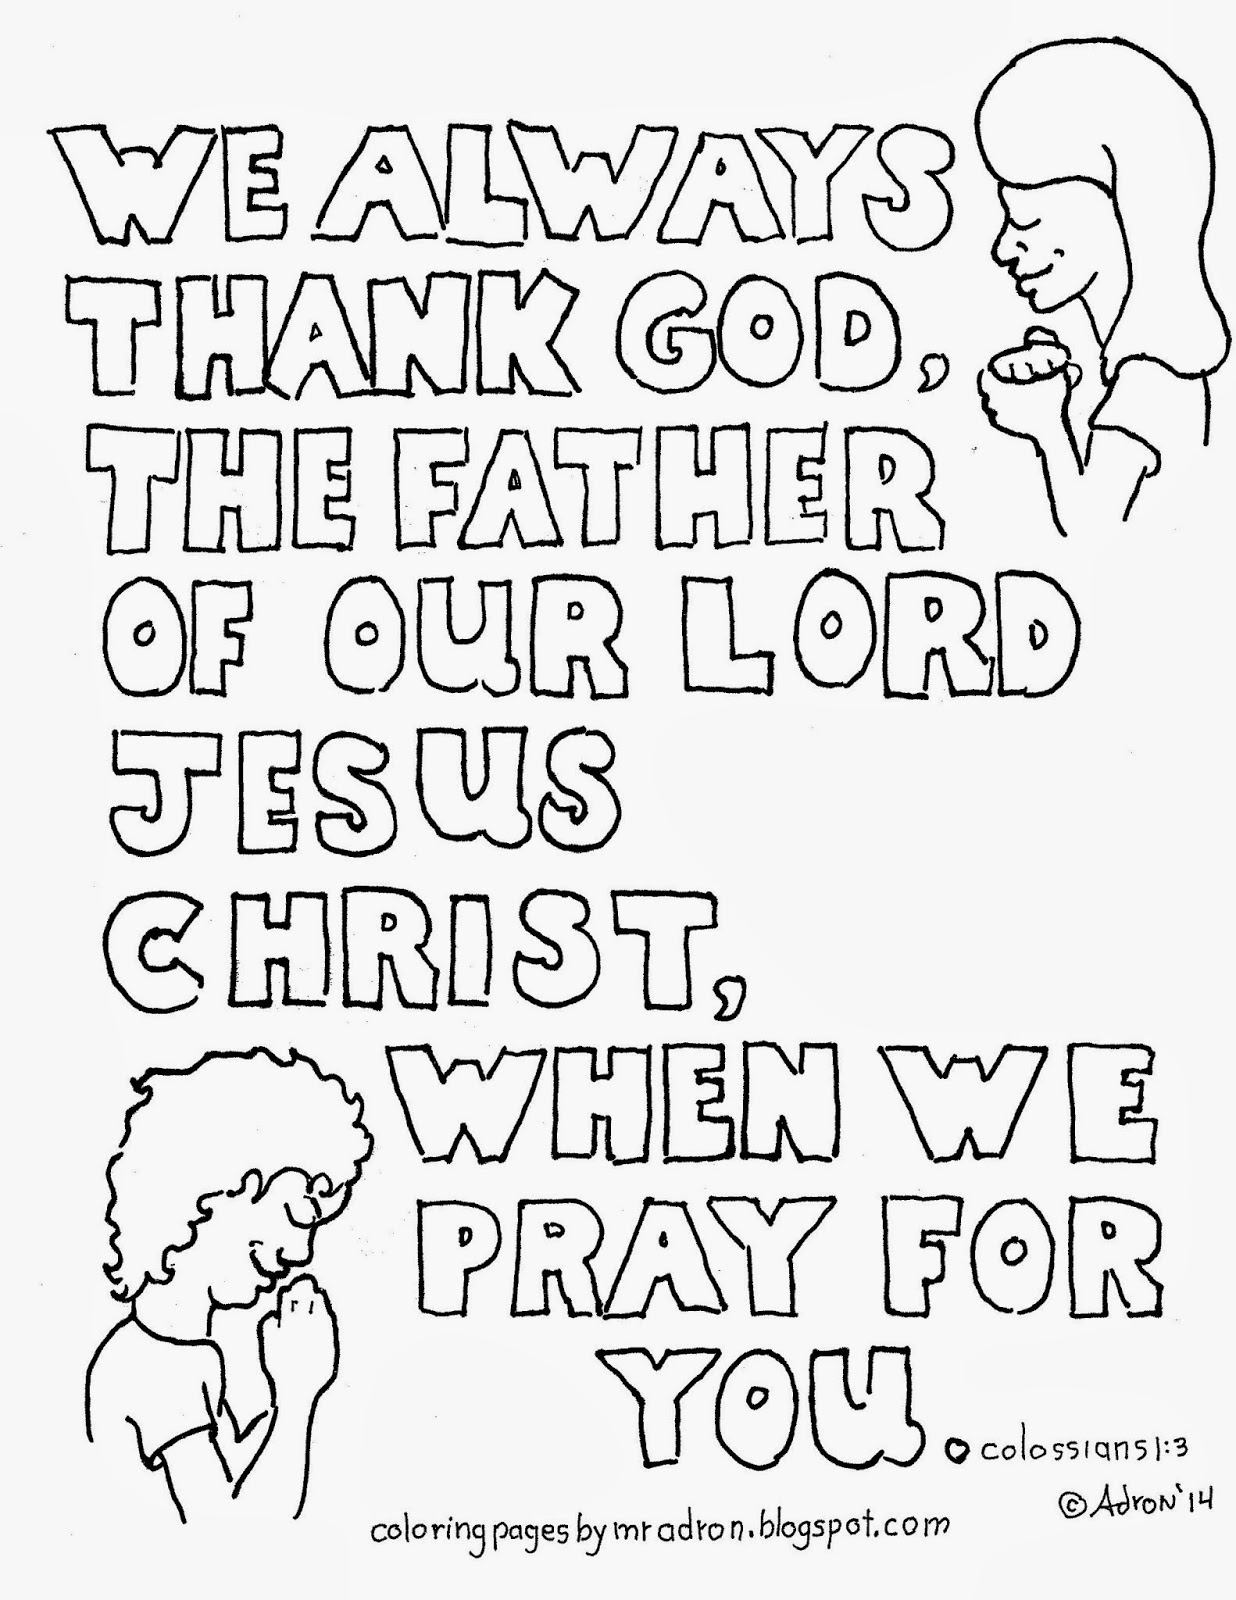 Coloring Pages for Kids by Mr. Adron: Colossians 1:3 Free